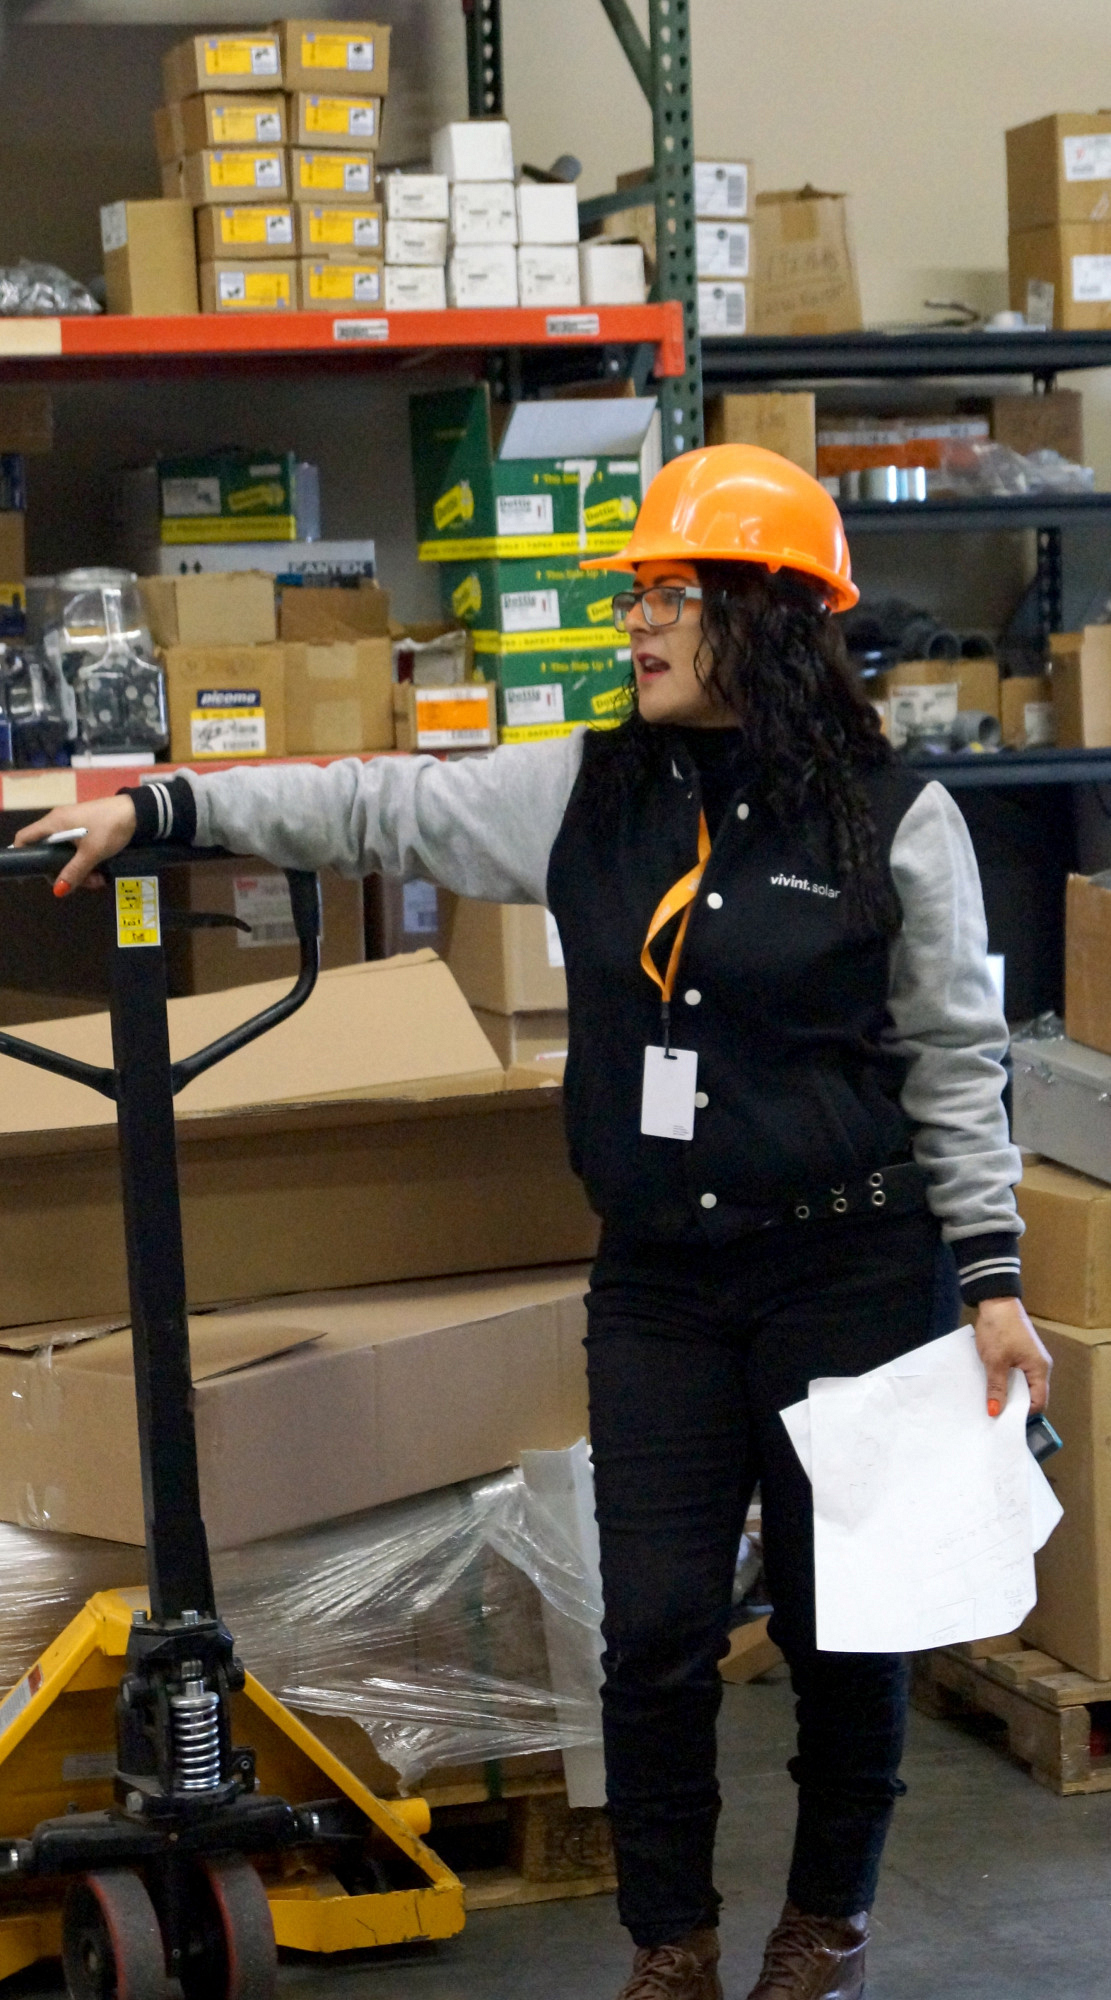 Working in the warehouse with an employee